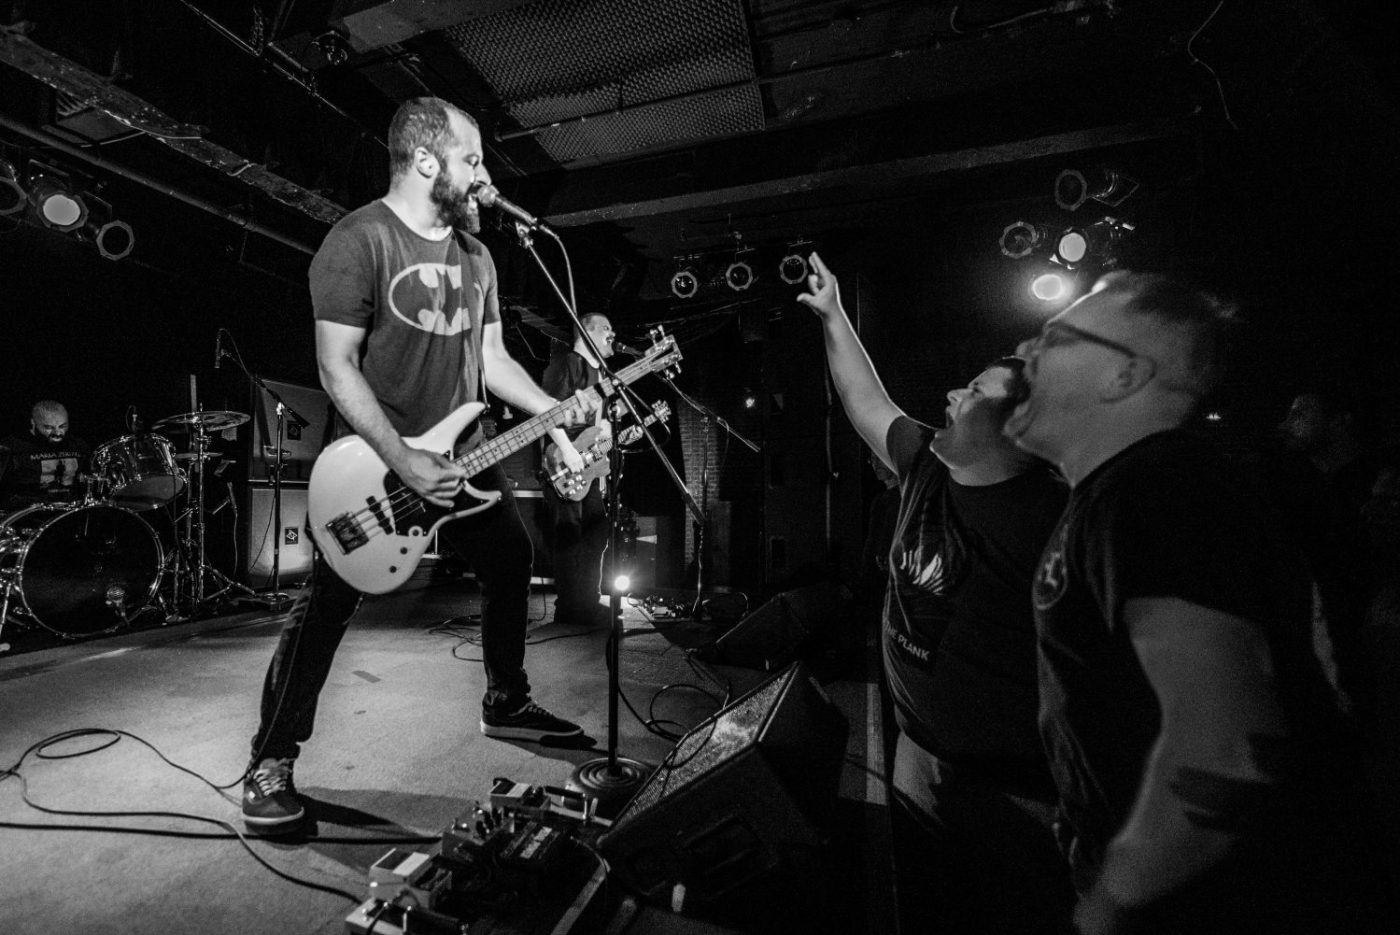 Torche : Black Cat | Photos | LIVING LIFE FEARLESS